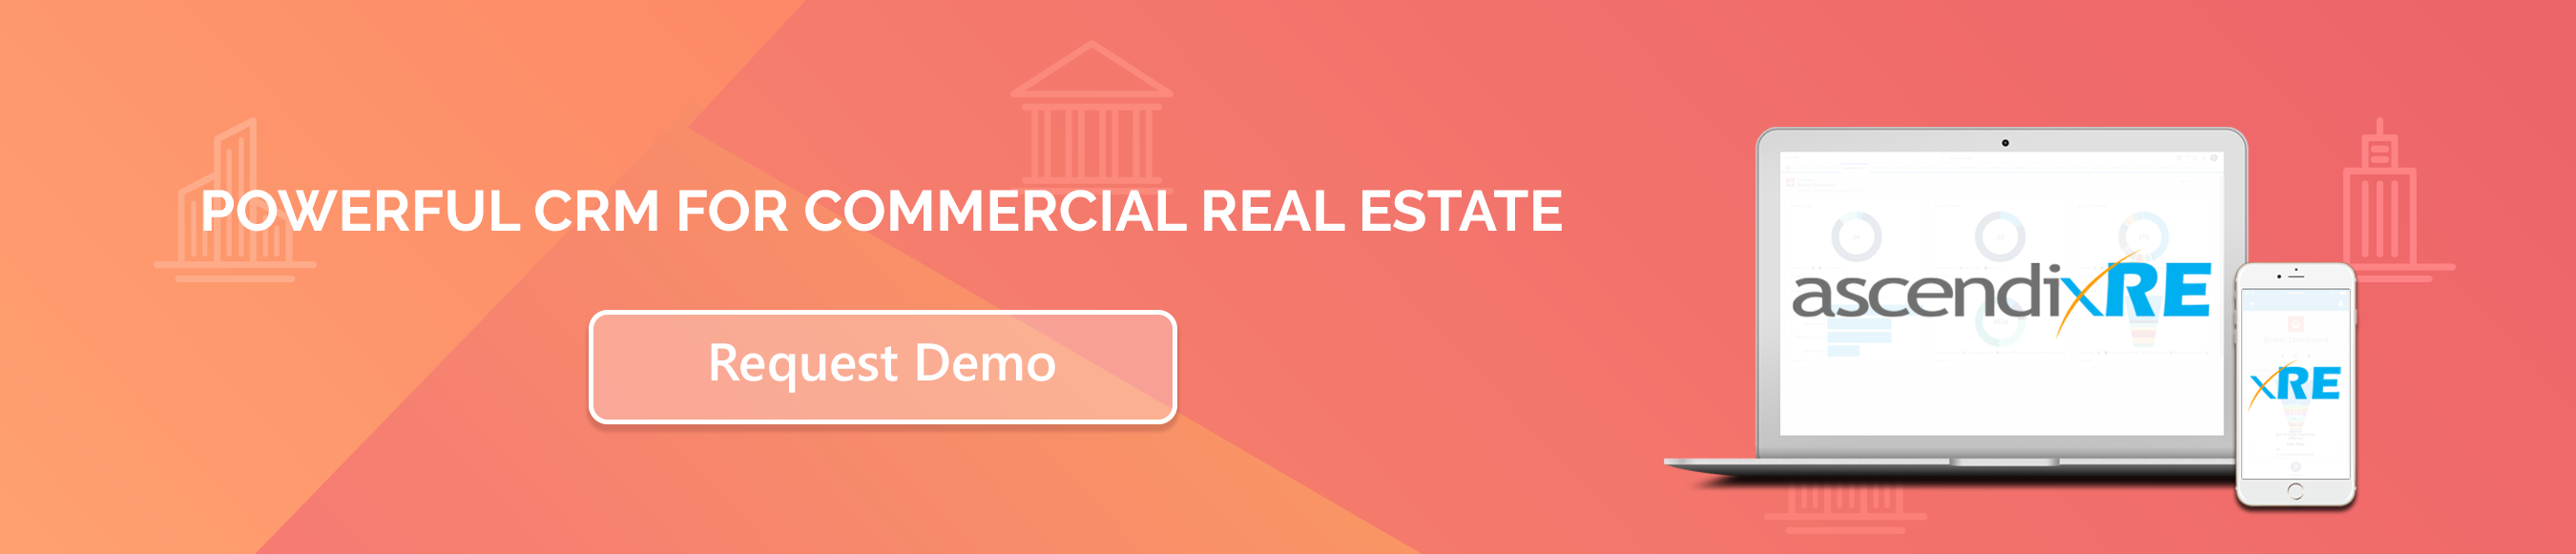 Powerful CRM for Commercial Real Estate